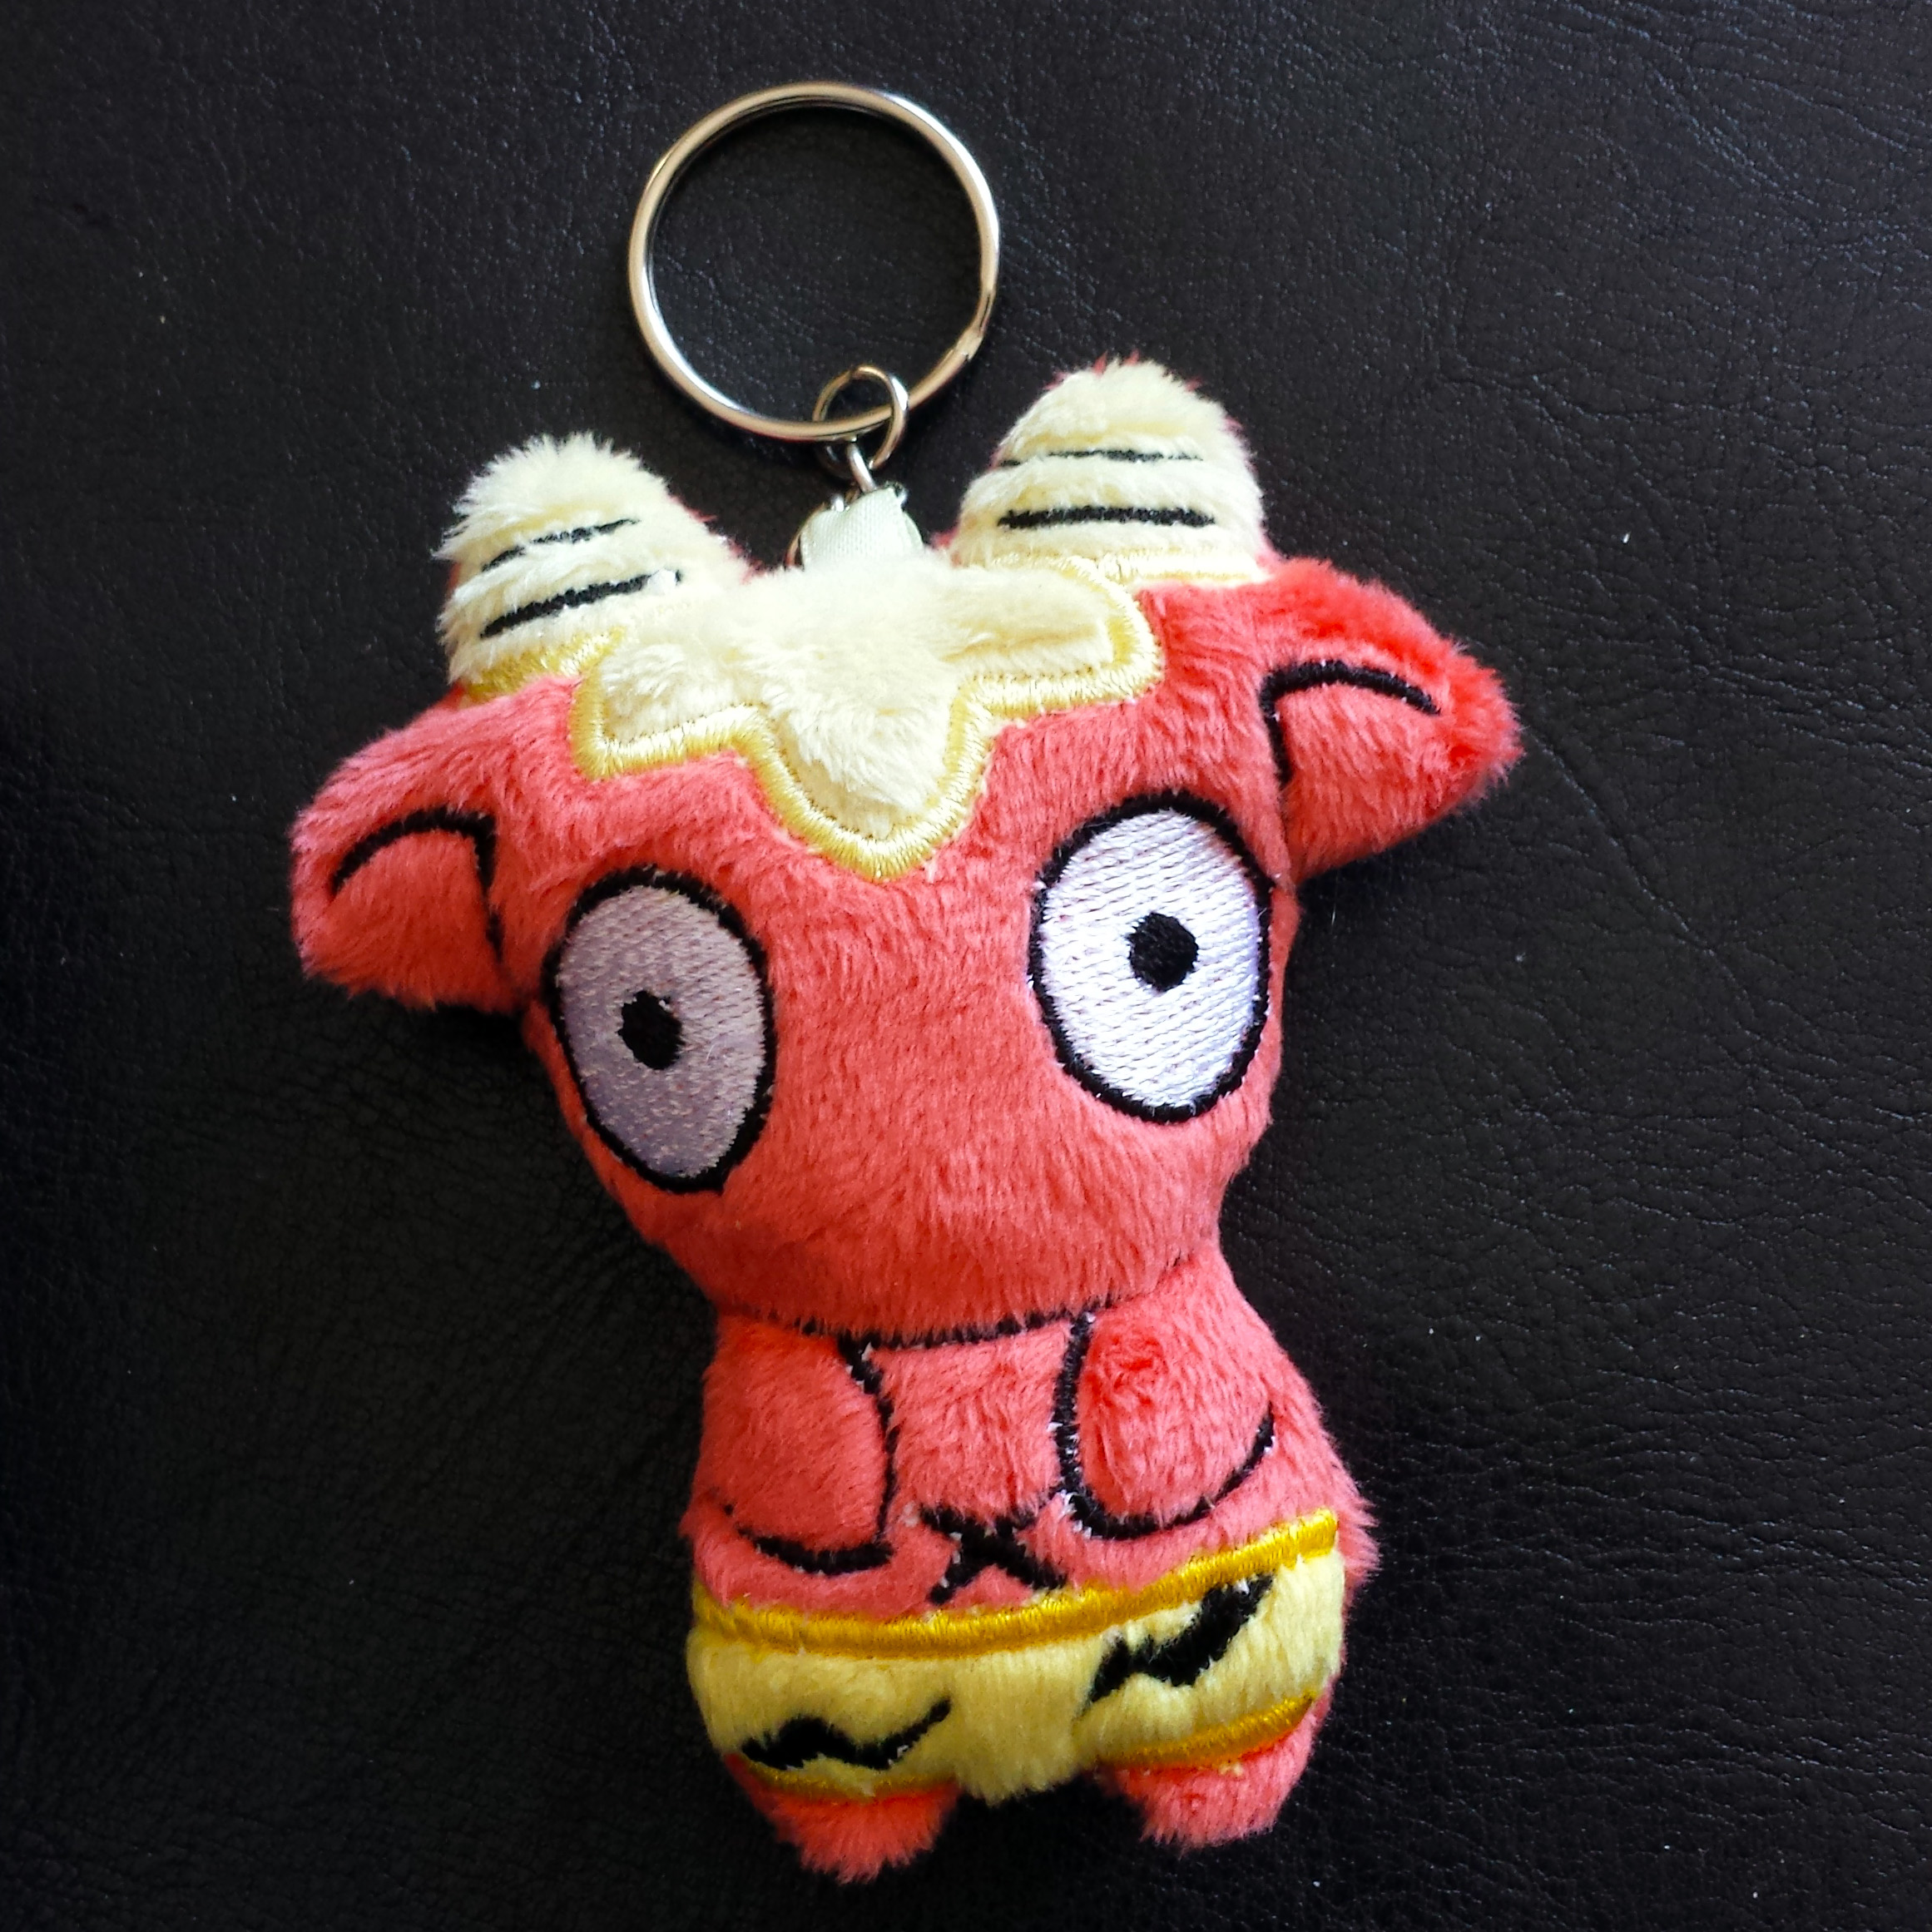 Conny How To Keep A Mummy Fanart Keychain Plushiluv Online Store Powered By Storenvy They are also easy crafts for kids to make you don't want a huge keychain hanging off your keys, so keep it short and sweet. conny how to keep a mummy fanart keychain from plushiluv